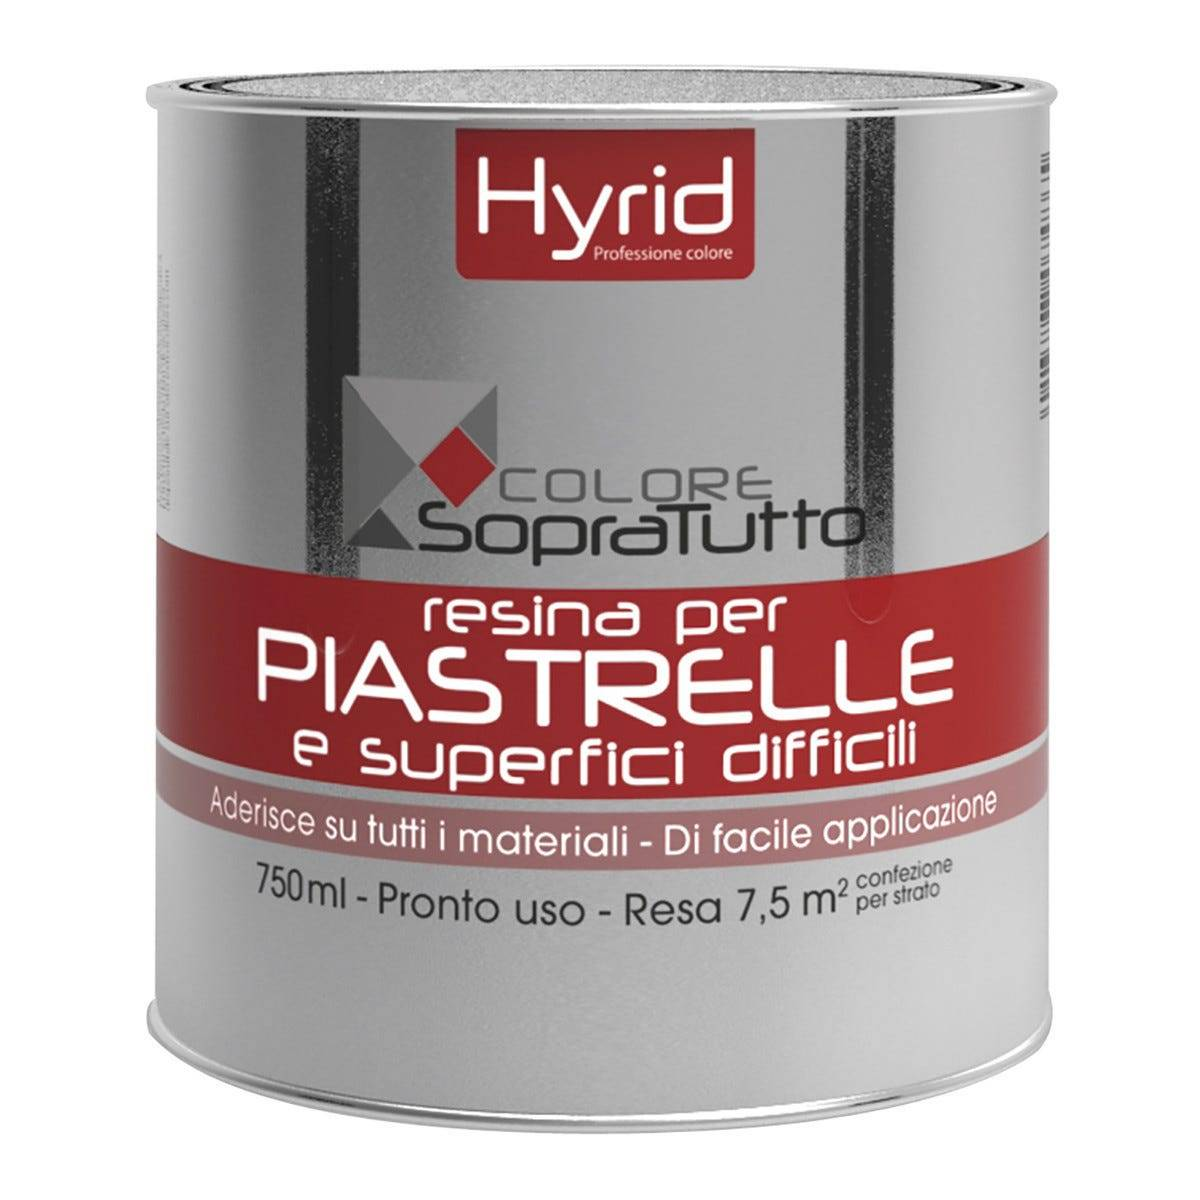 HYRID BY COVEMA Resina Piastrelle Hyrid Nero 750 Ml Per Superfici Difficili 10 M²  Con 1 L Pronto Uso